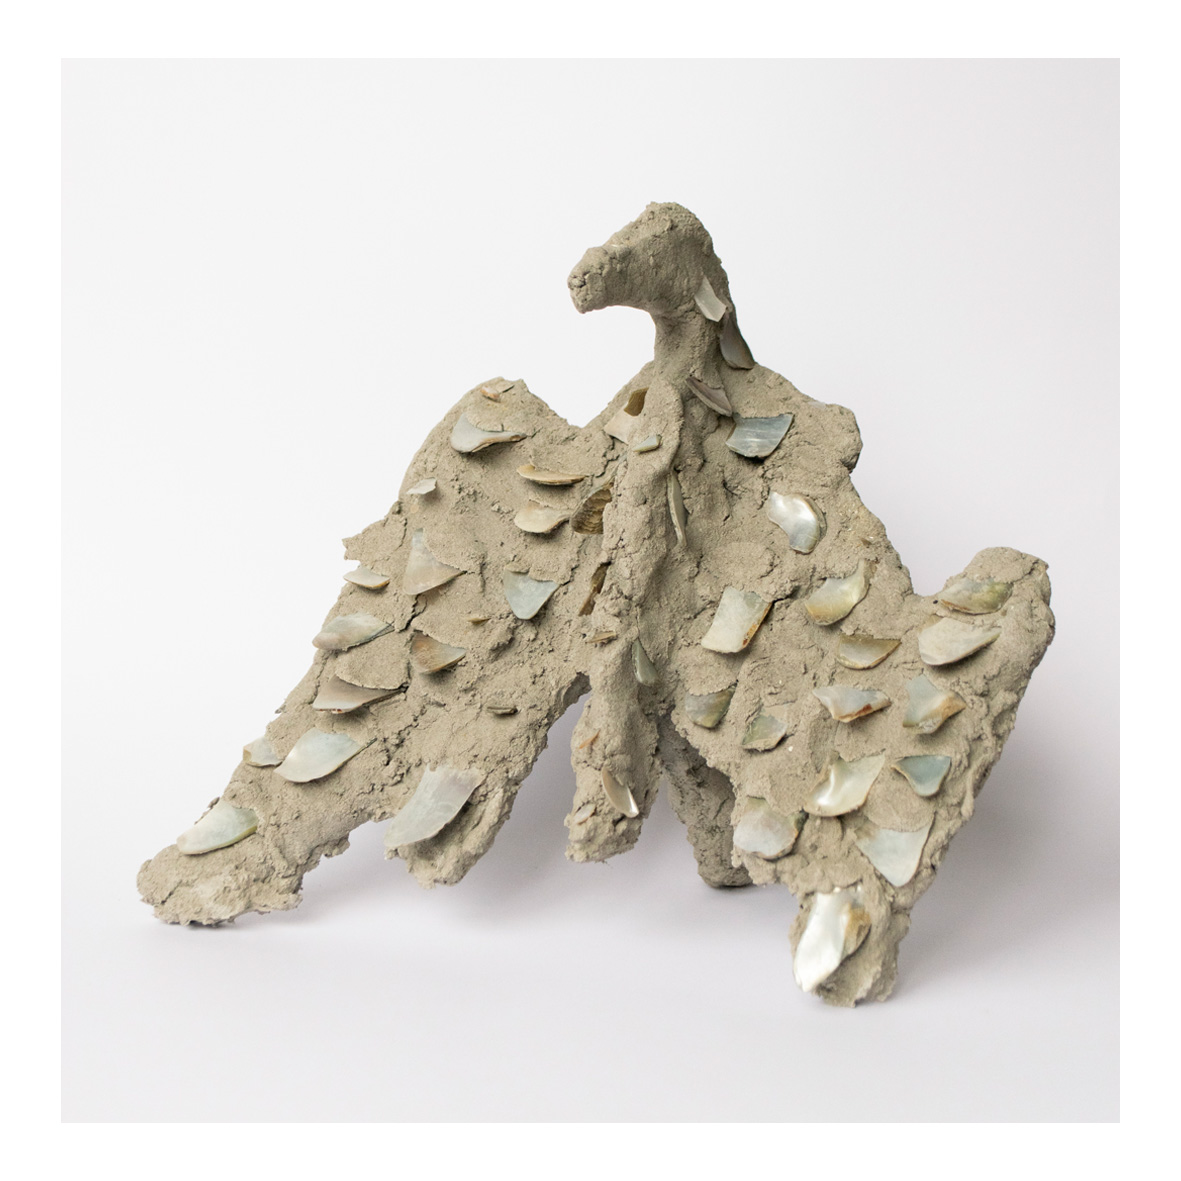 @annareading Augury (2020) Cement, oyster shell, tile-backing board (armature) 21 x 25 x 13cm